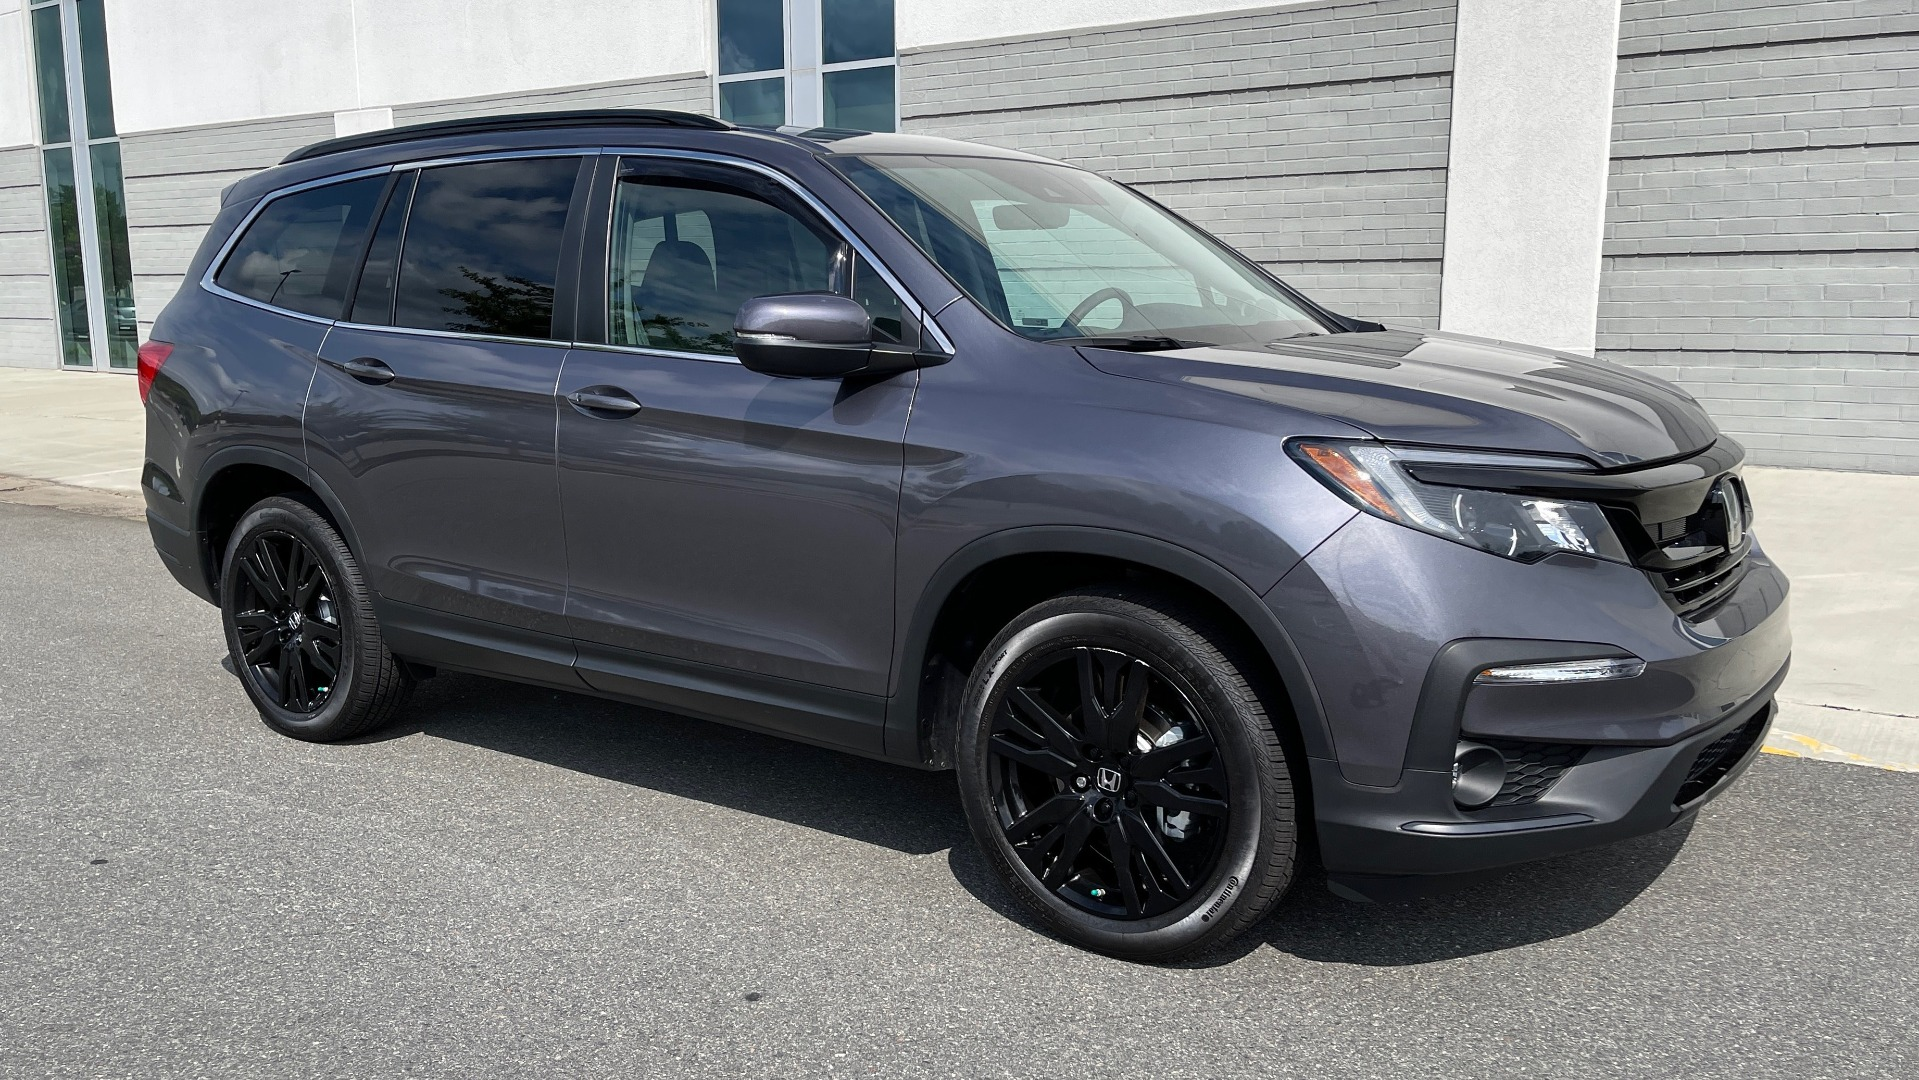 Used 2021 Honda PILOT SE / 3.5L V6 / 9-SPD AUTO / SUNROOF / 3-ROW / REARVIEW for sale $38,795 at Formula Imports in Charlotte NC 28227 5